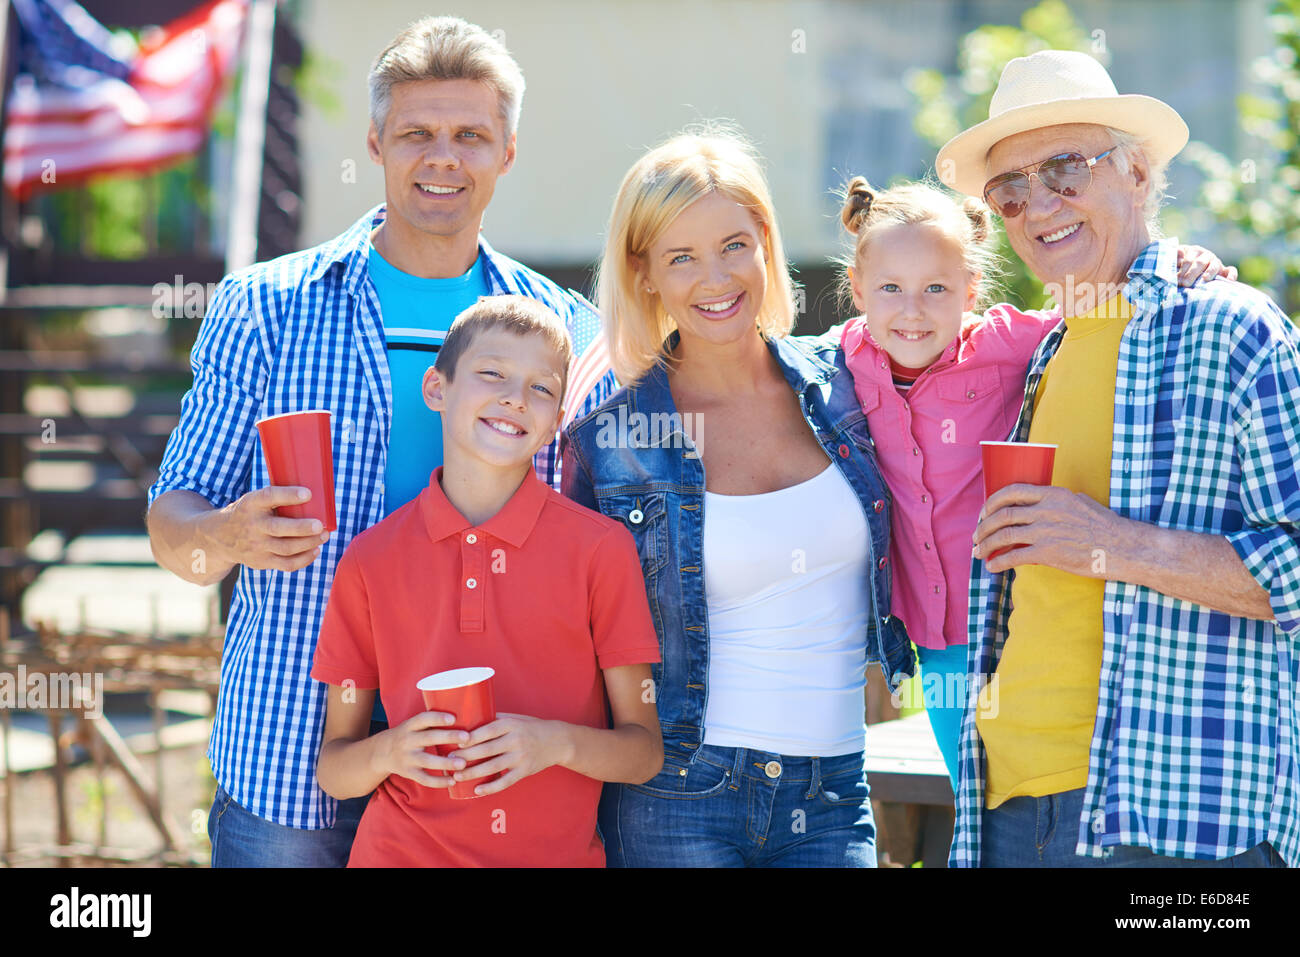 Big family of five spending tome outdoors - Stock Image